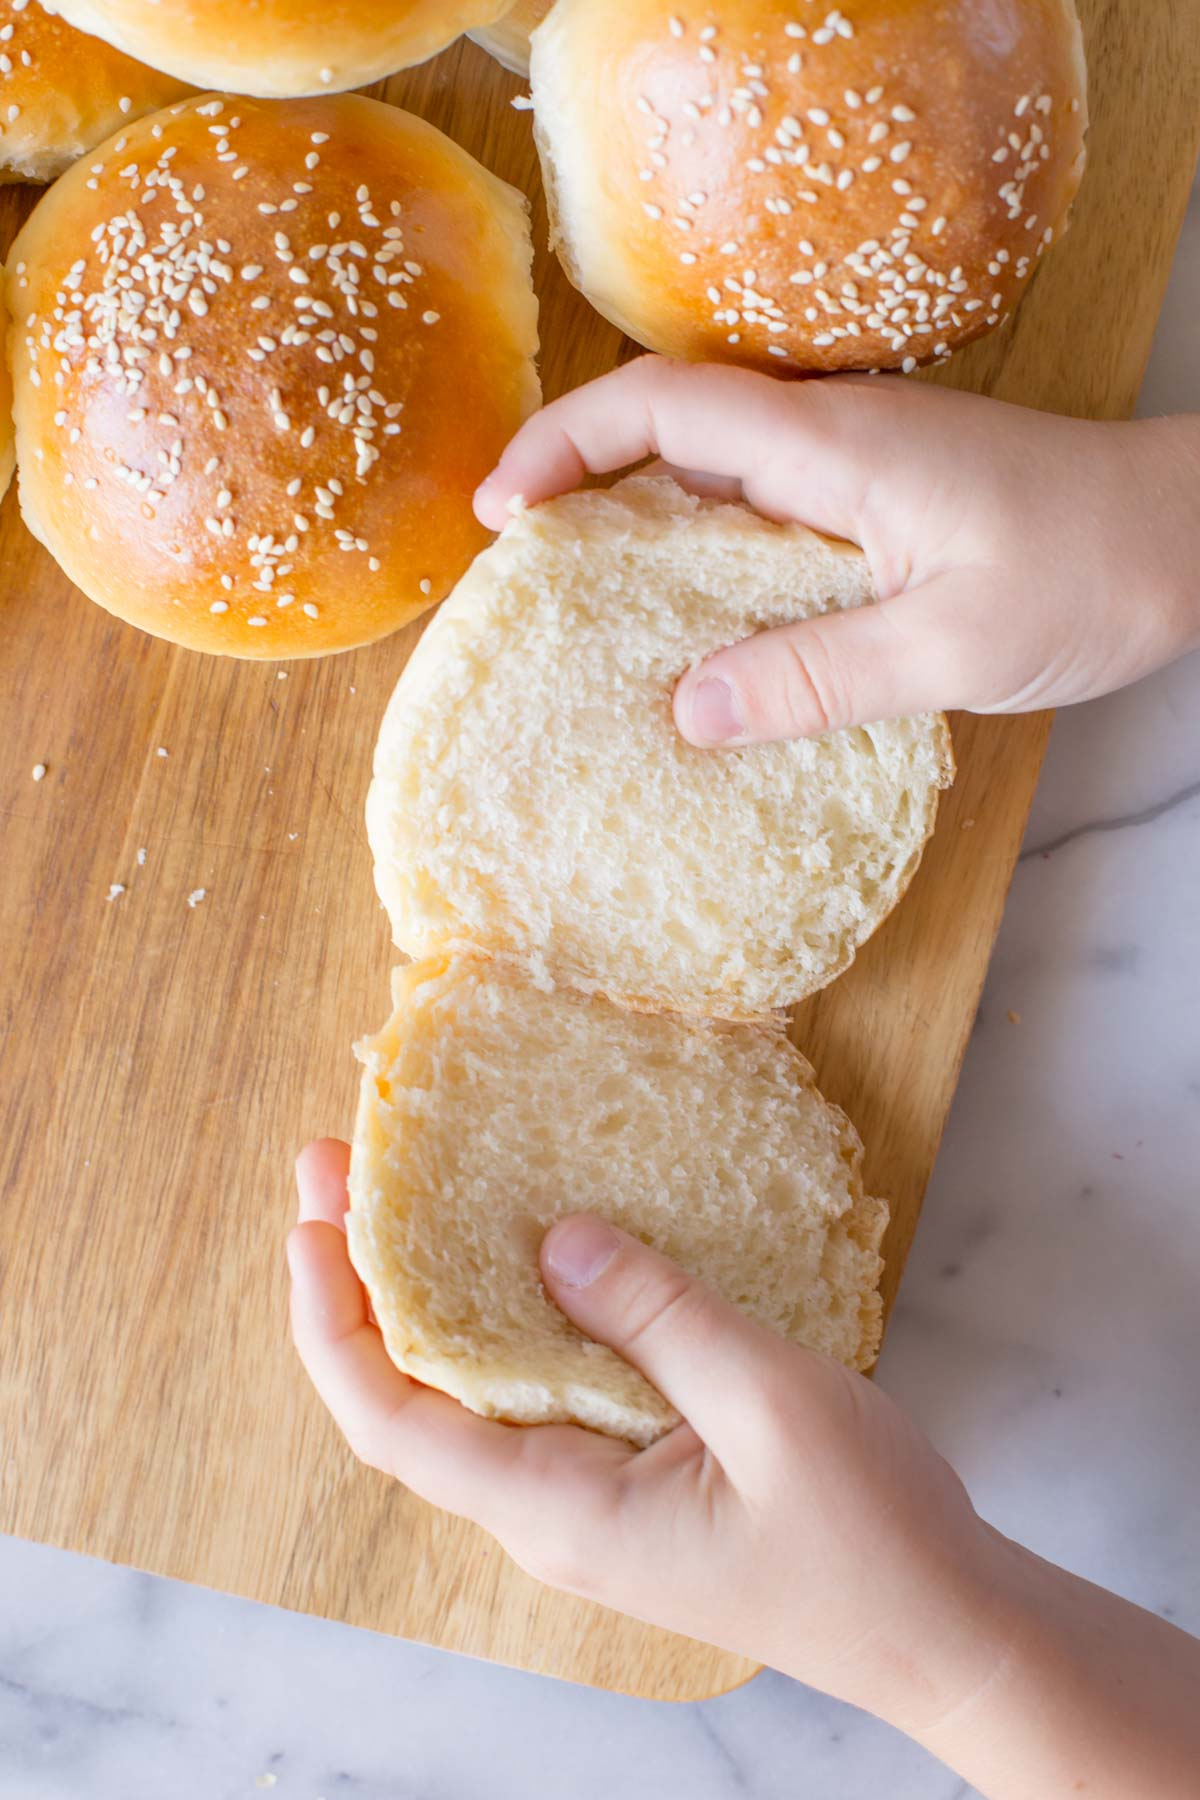 A close up shot of two hands separating a cut Sourdough Hamburger Bun on a wooden cutting board with more buns next to it.